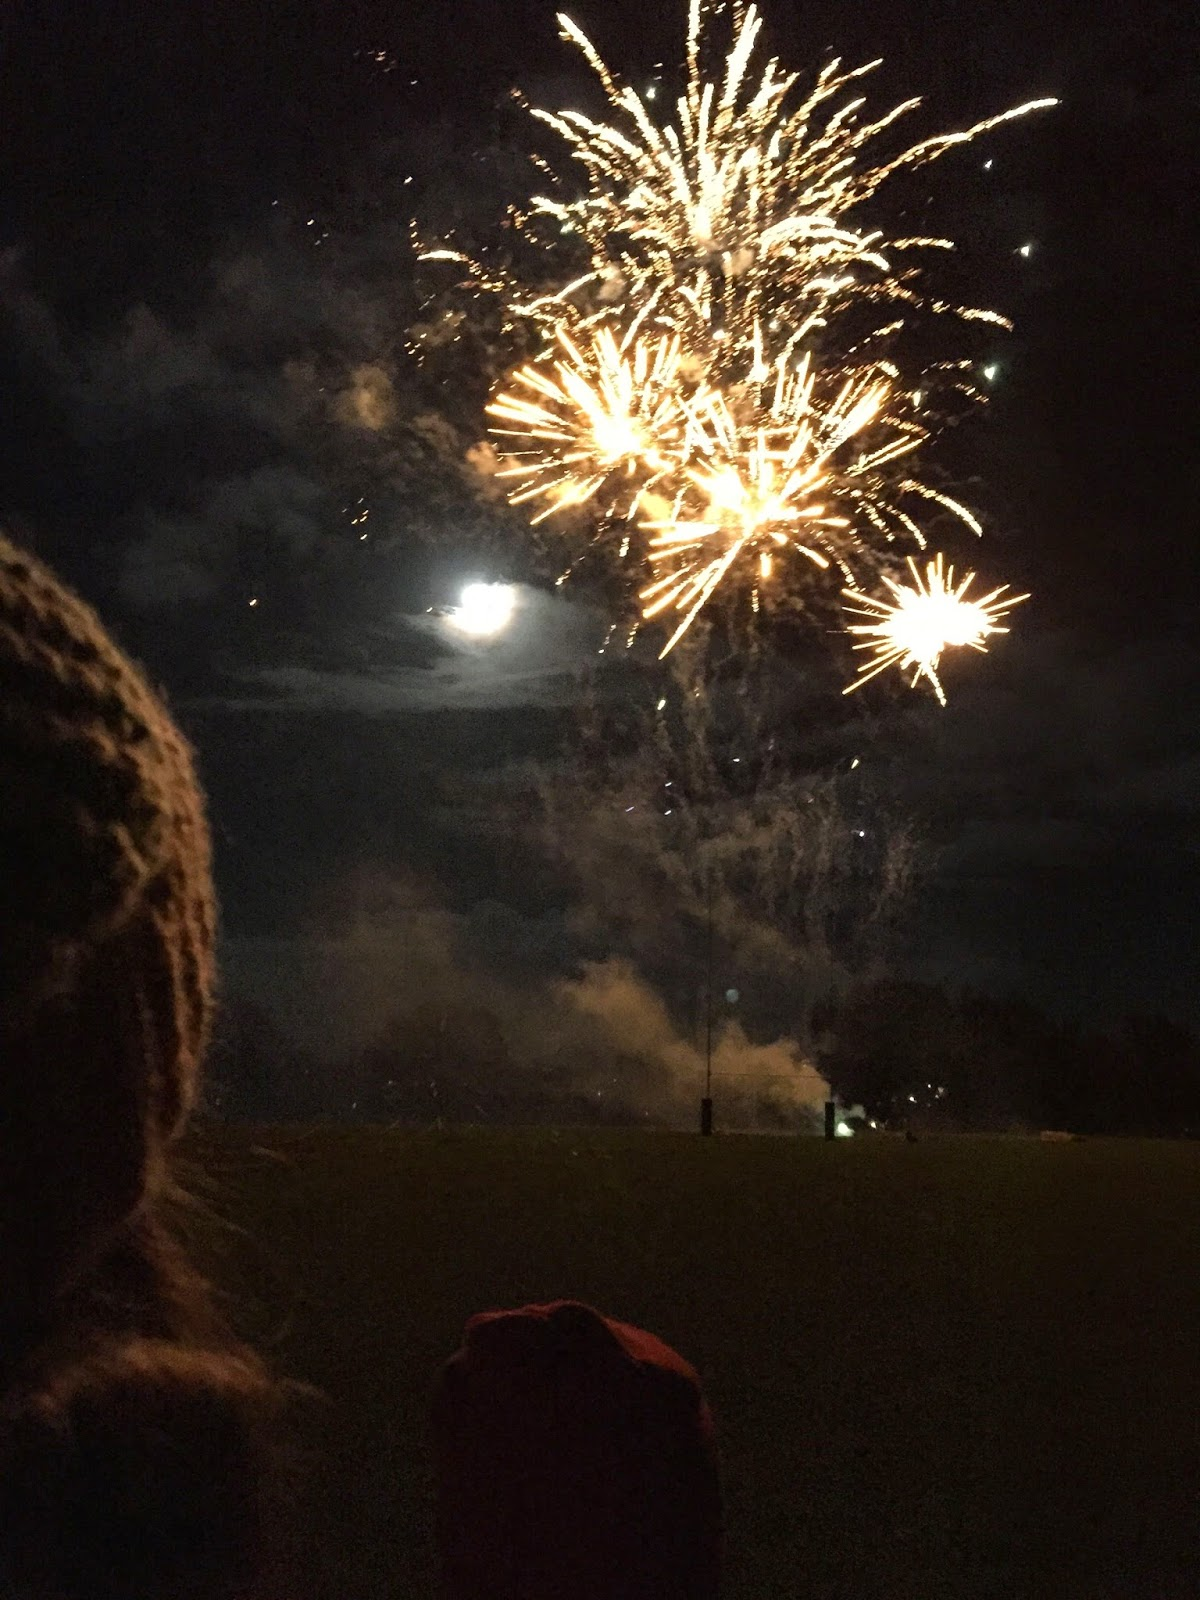 Fireworks, bonfire night, full moon